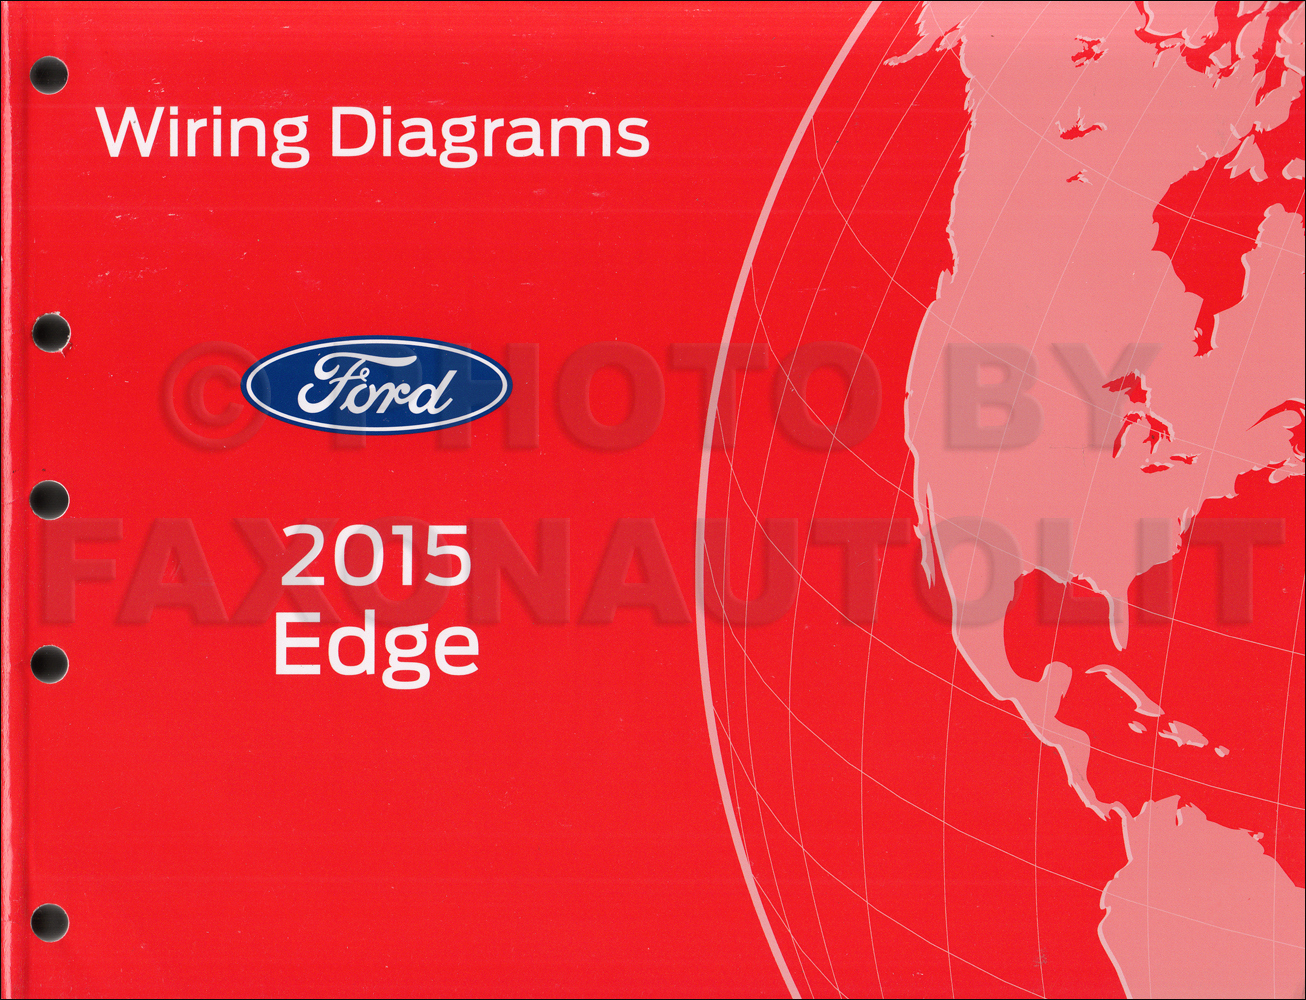 hight resolution of 2015 ford edge wiring diagram manual original ford edge wiring diagram ford edge wiring diagram